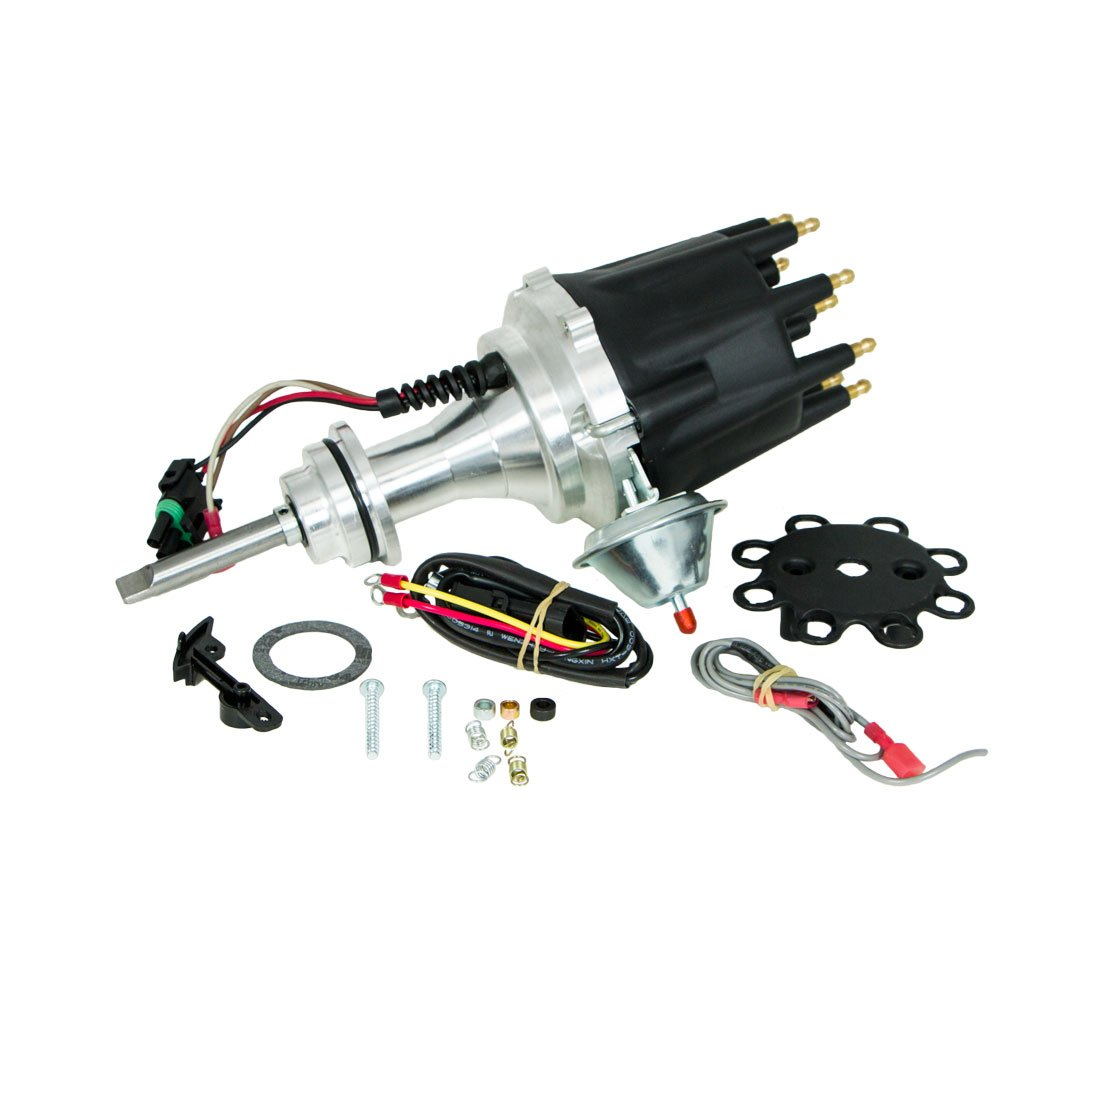 Top Street Performance JM7713BK Pro Series Ready to Run Electronic Distributor with Black Cap